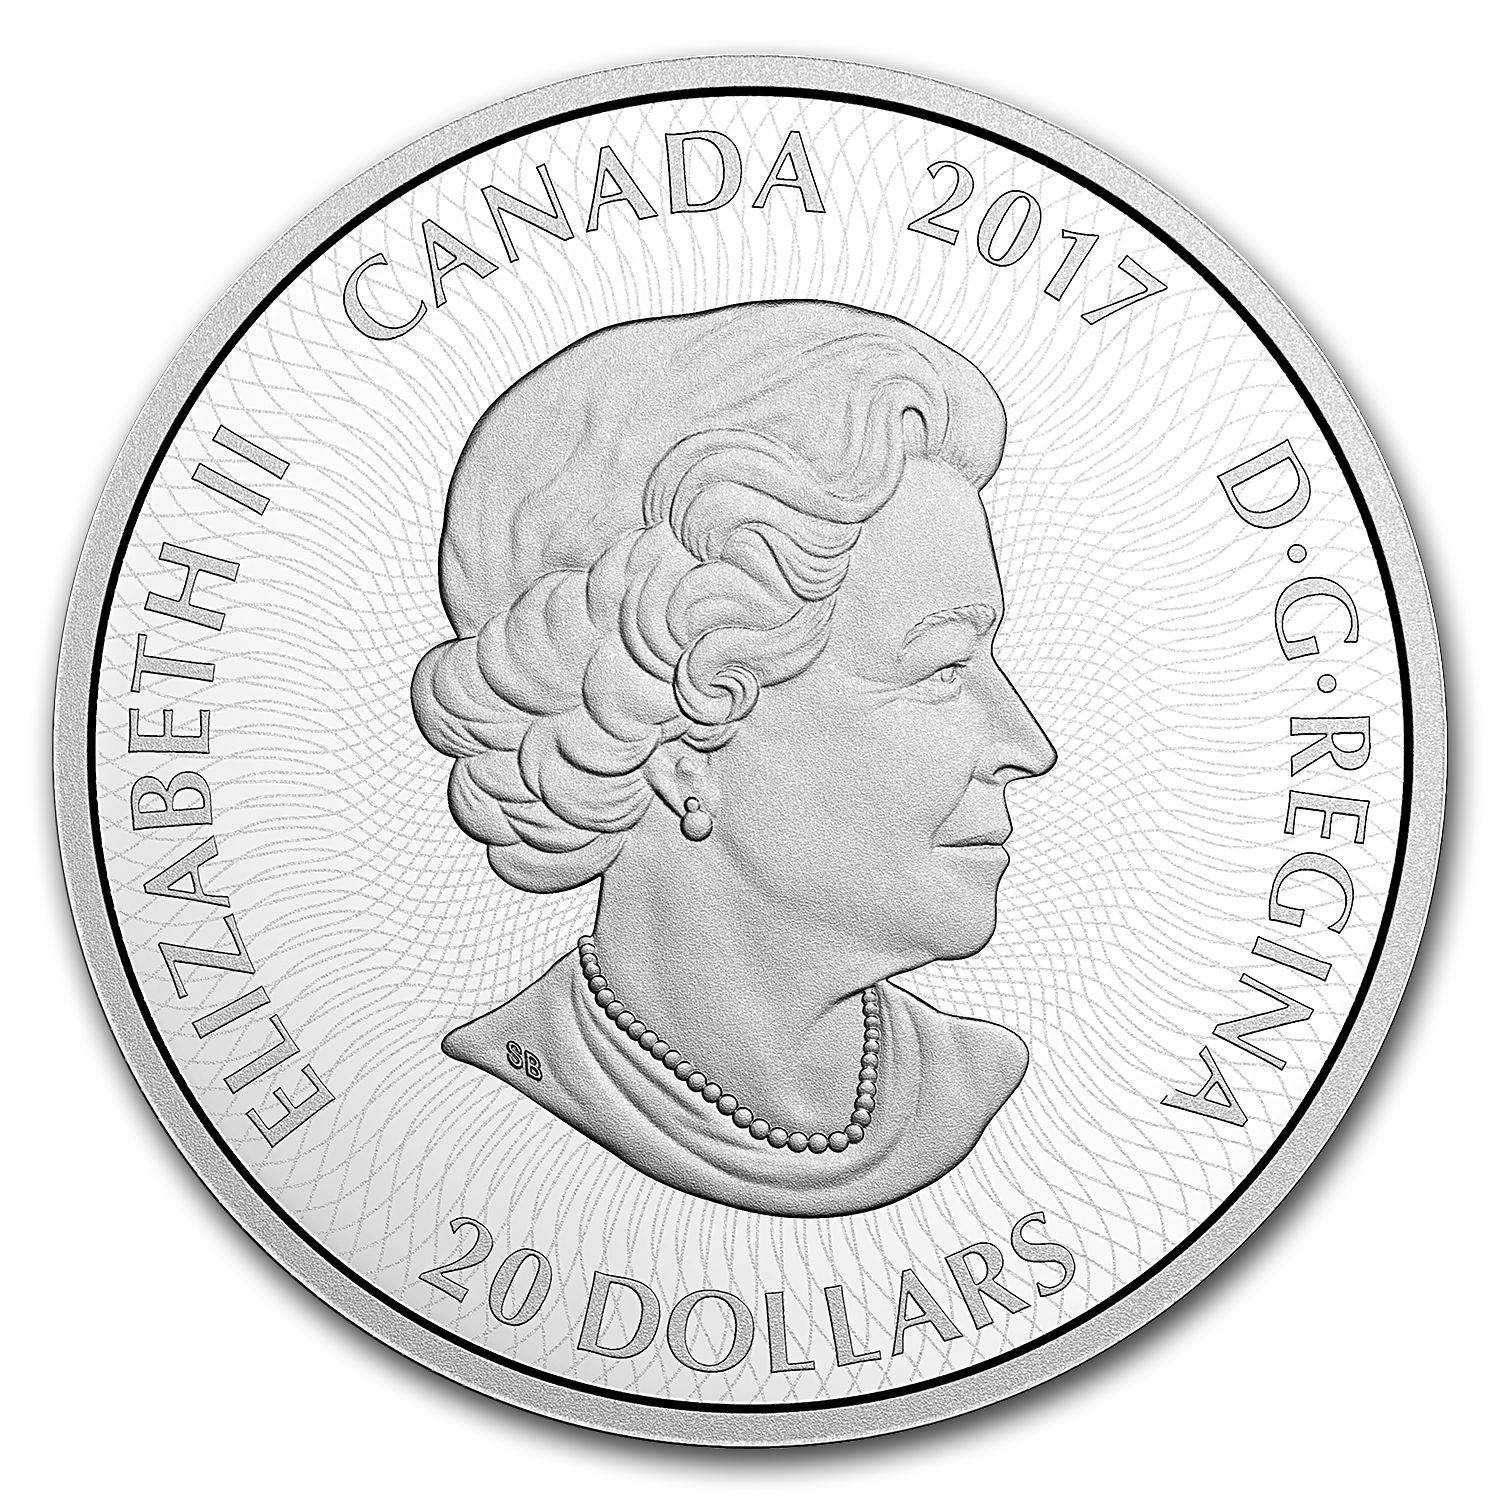 2017 Canada 1 oz Proof Silver $20 Kaleidoscope: The Loon